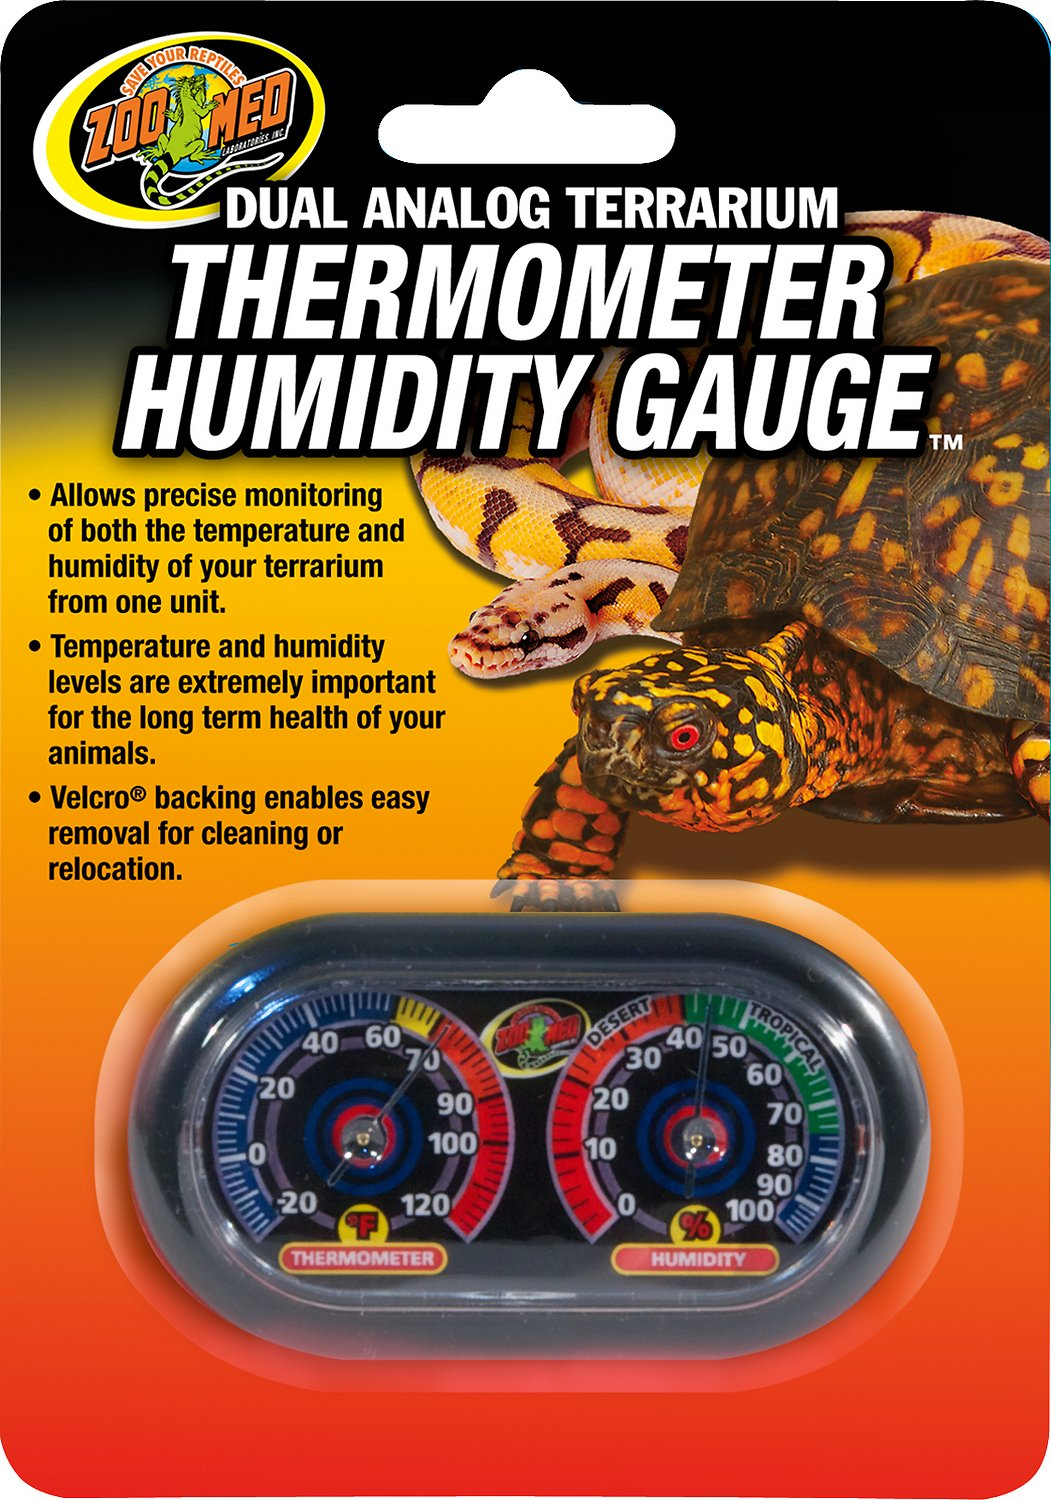 Zoo Med Dual Analog Thermometer and Humidity Gauge Image